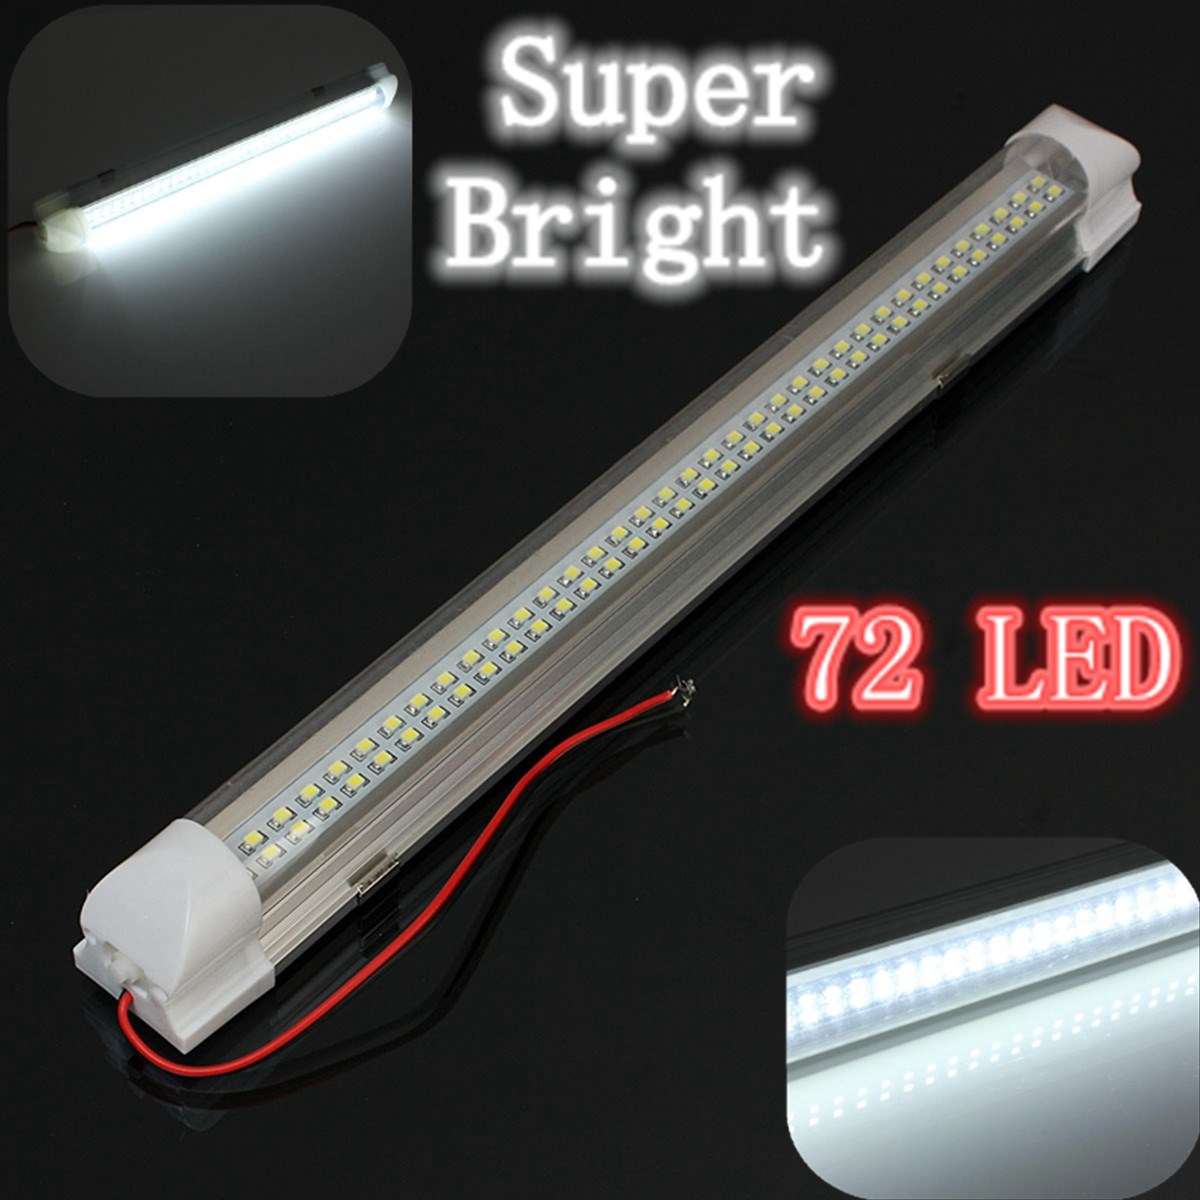 Led Lampen 12v Us 4 99 12v Universal Car Auto Caravan Interior 72 Led White Light Strip Bar 340mm Lamp On Off Switch In Signal Lamp From Automobiles Motorcycles